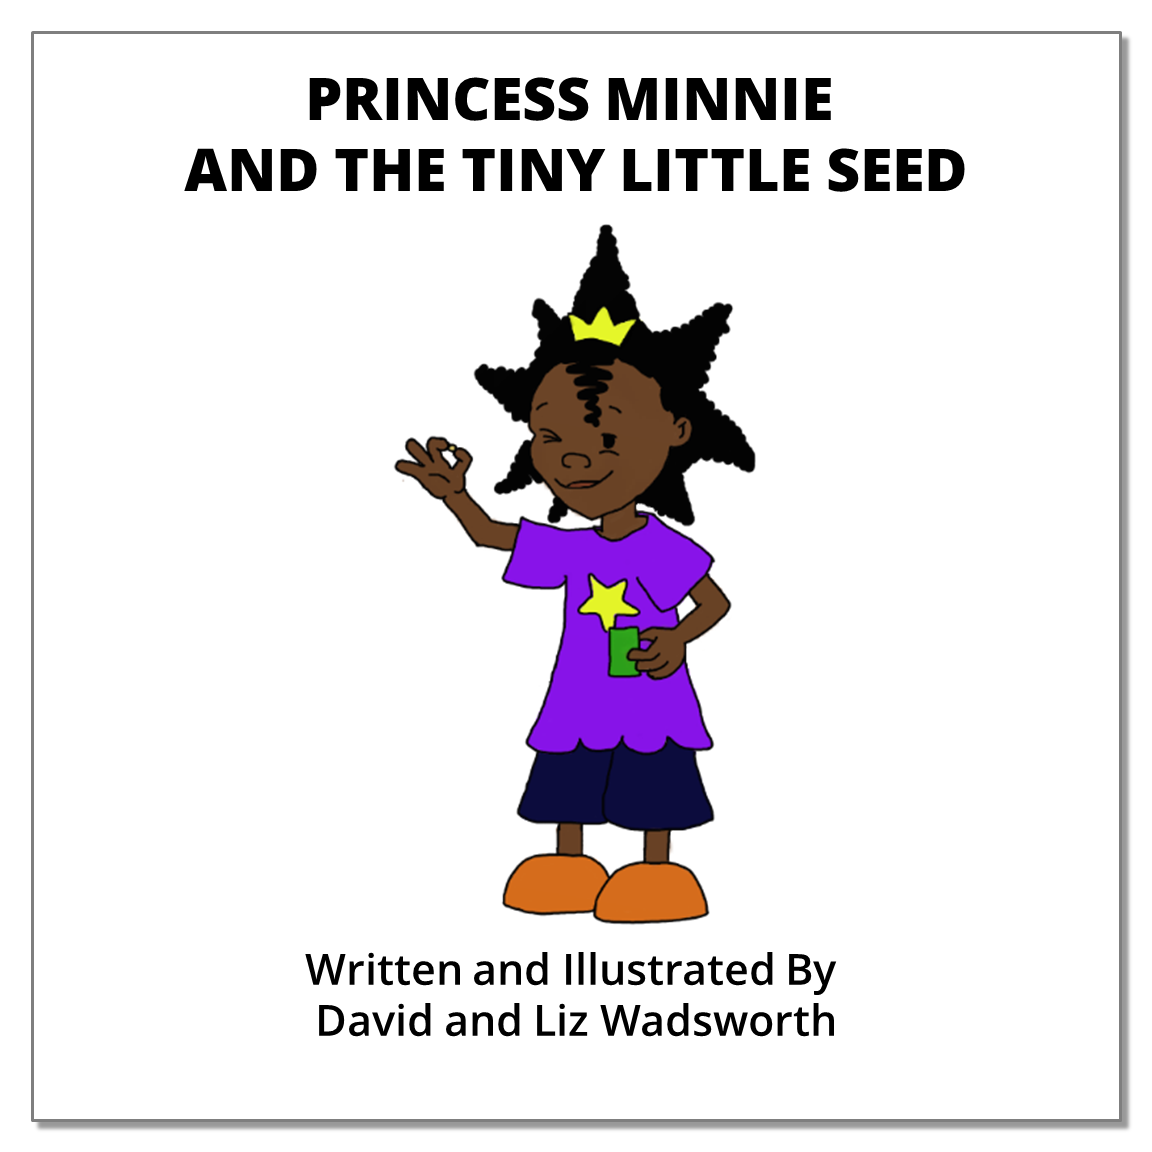 Princess Minnie And The Tiny Little Seed - The parable of the mustard seed.